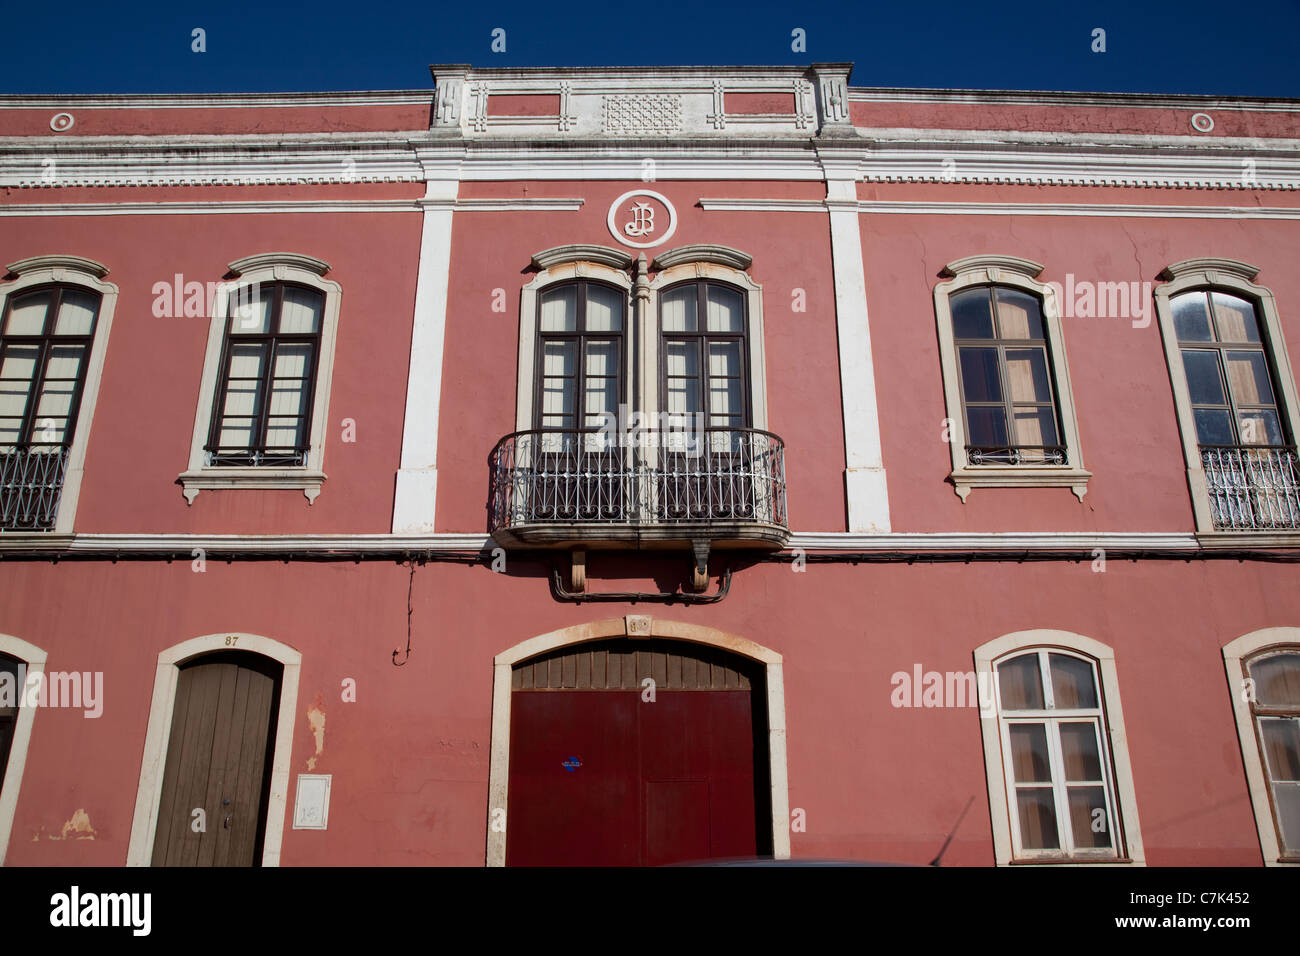 Portugal, Algarve, Silves, Colourful Architecture - Stock Image